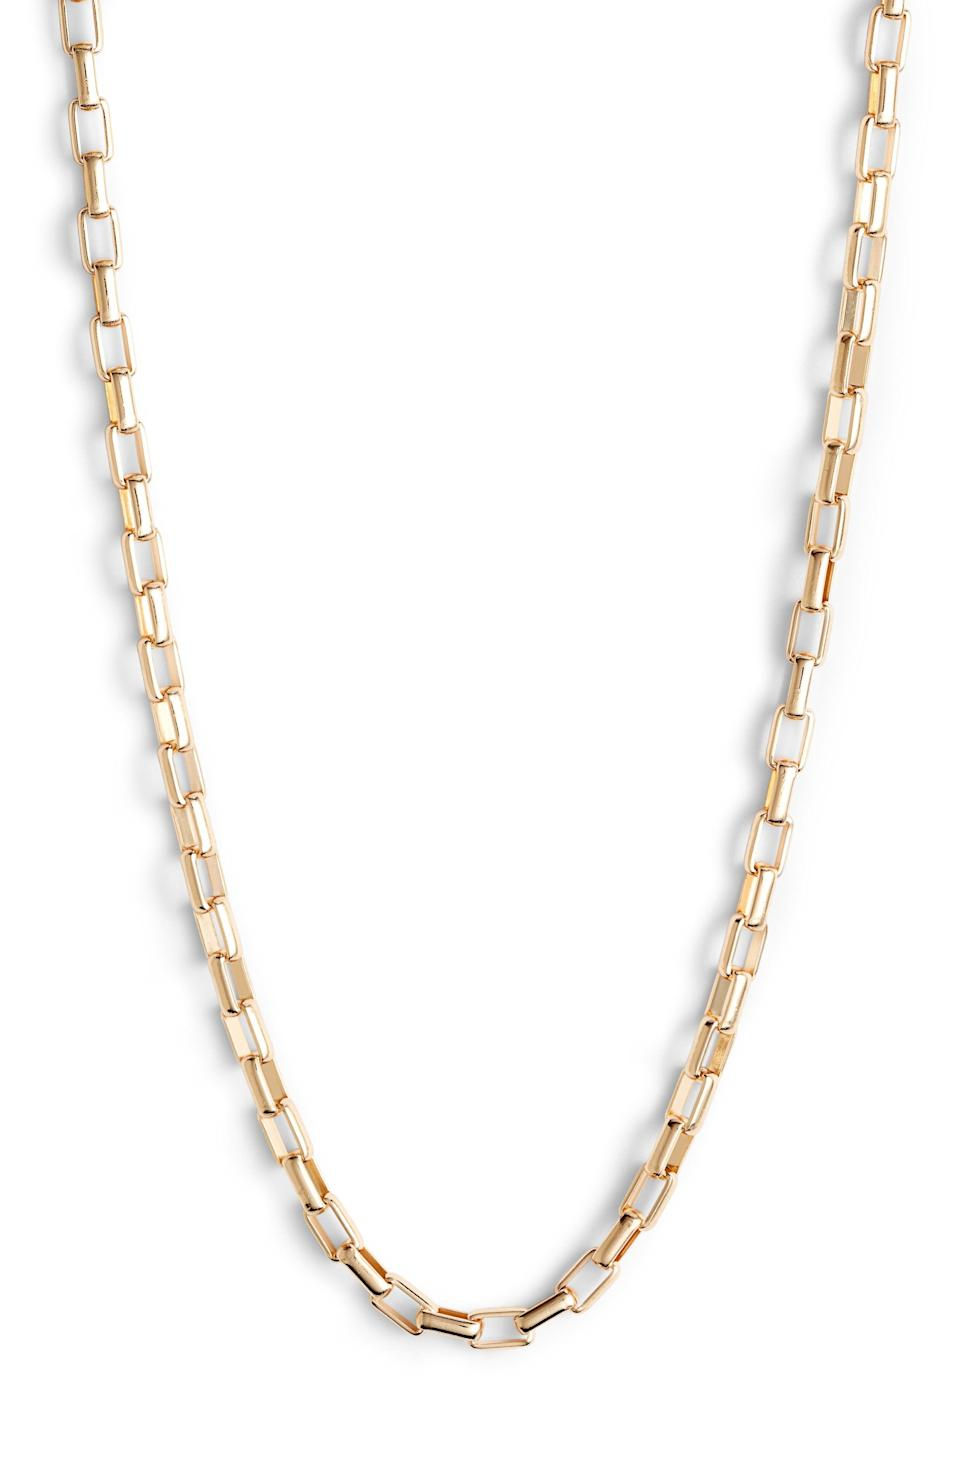 """<p><strong>Nordstrom</strong></p><p>nordstrom.com</p><p><strong>$9.97</strong></p><p><a href=""""https://go.redirectingat.com?id=74968X1596630&url=https%3A%2F%2Fwww.nordstrom.com%2Fs%2Fnordstrom-box-chain-collar-necklace%2F5257171&sref=https%3A%2F%2Fwww.esquire.com%2Fstyle%2Fg36535194%2Fnordstrom-mens-sale-half-yearly-spring-2021%2F"""" rel=""""nofollow noopener"""" target=""""_blank"""" data-ylk=""""slk:Shop Now"""" class=""""link rapid-noclick-resp"""">Shop Now</a></p><p>For necklace newbies, you can't go wrong with a simple gold chain, especially one that's less than $10. </p>"""